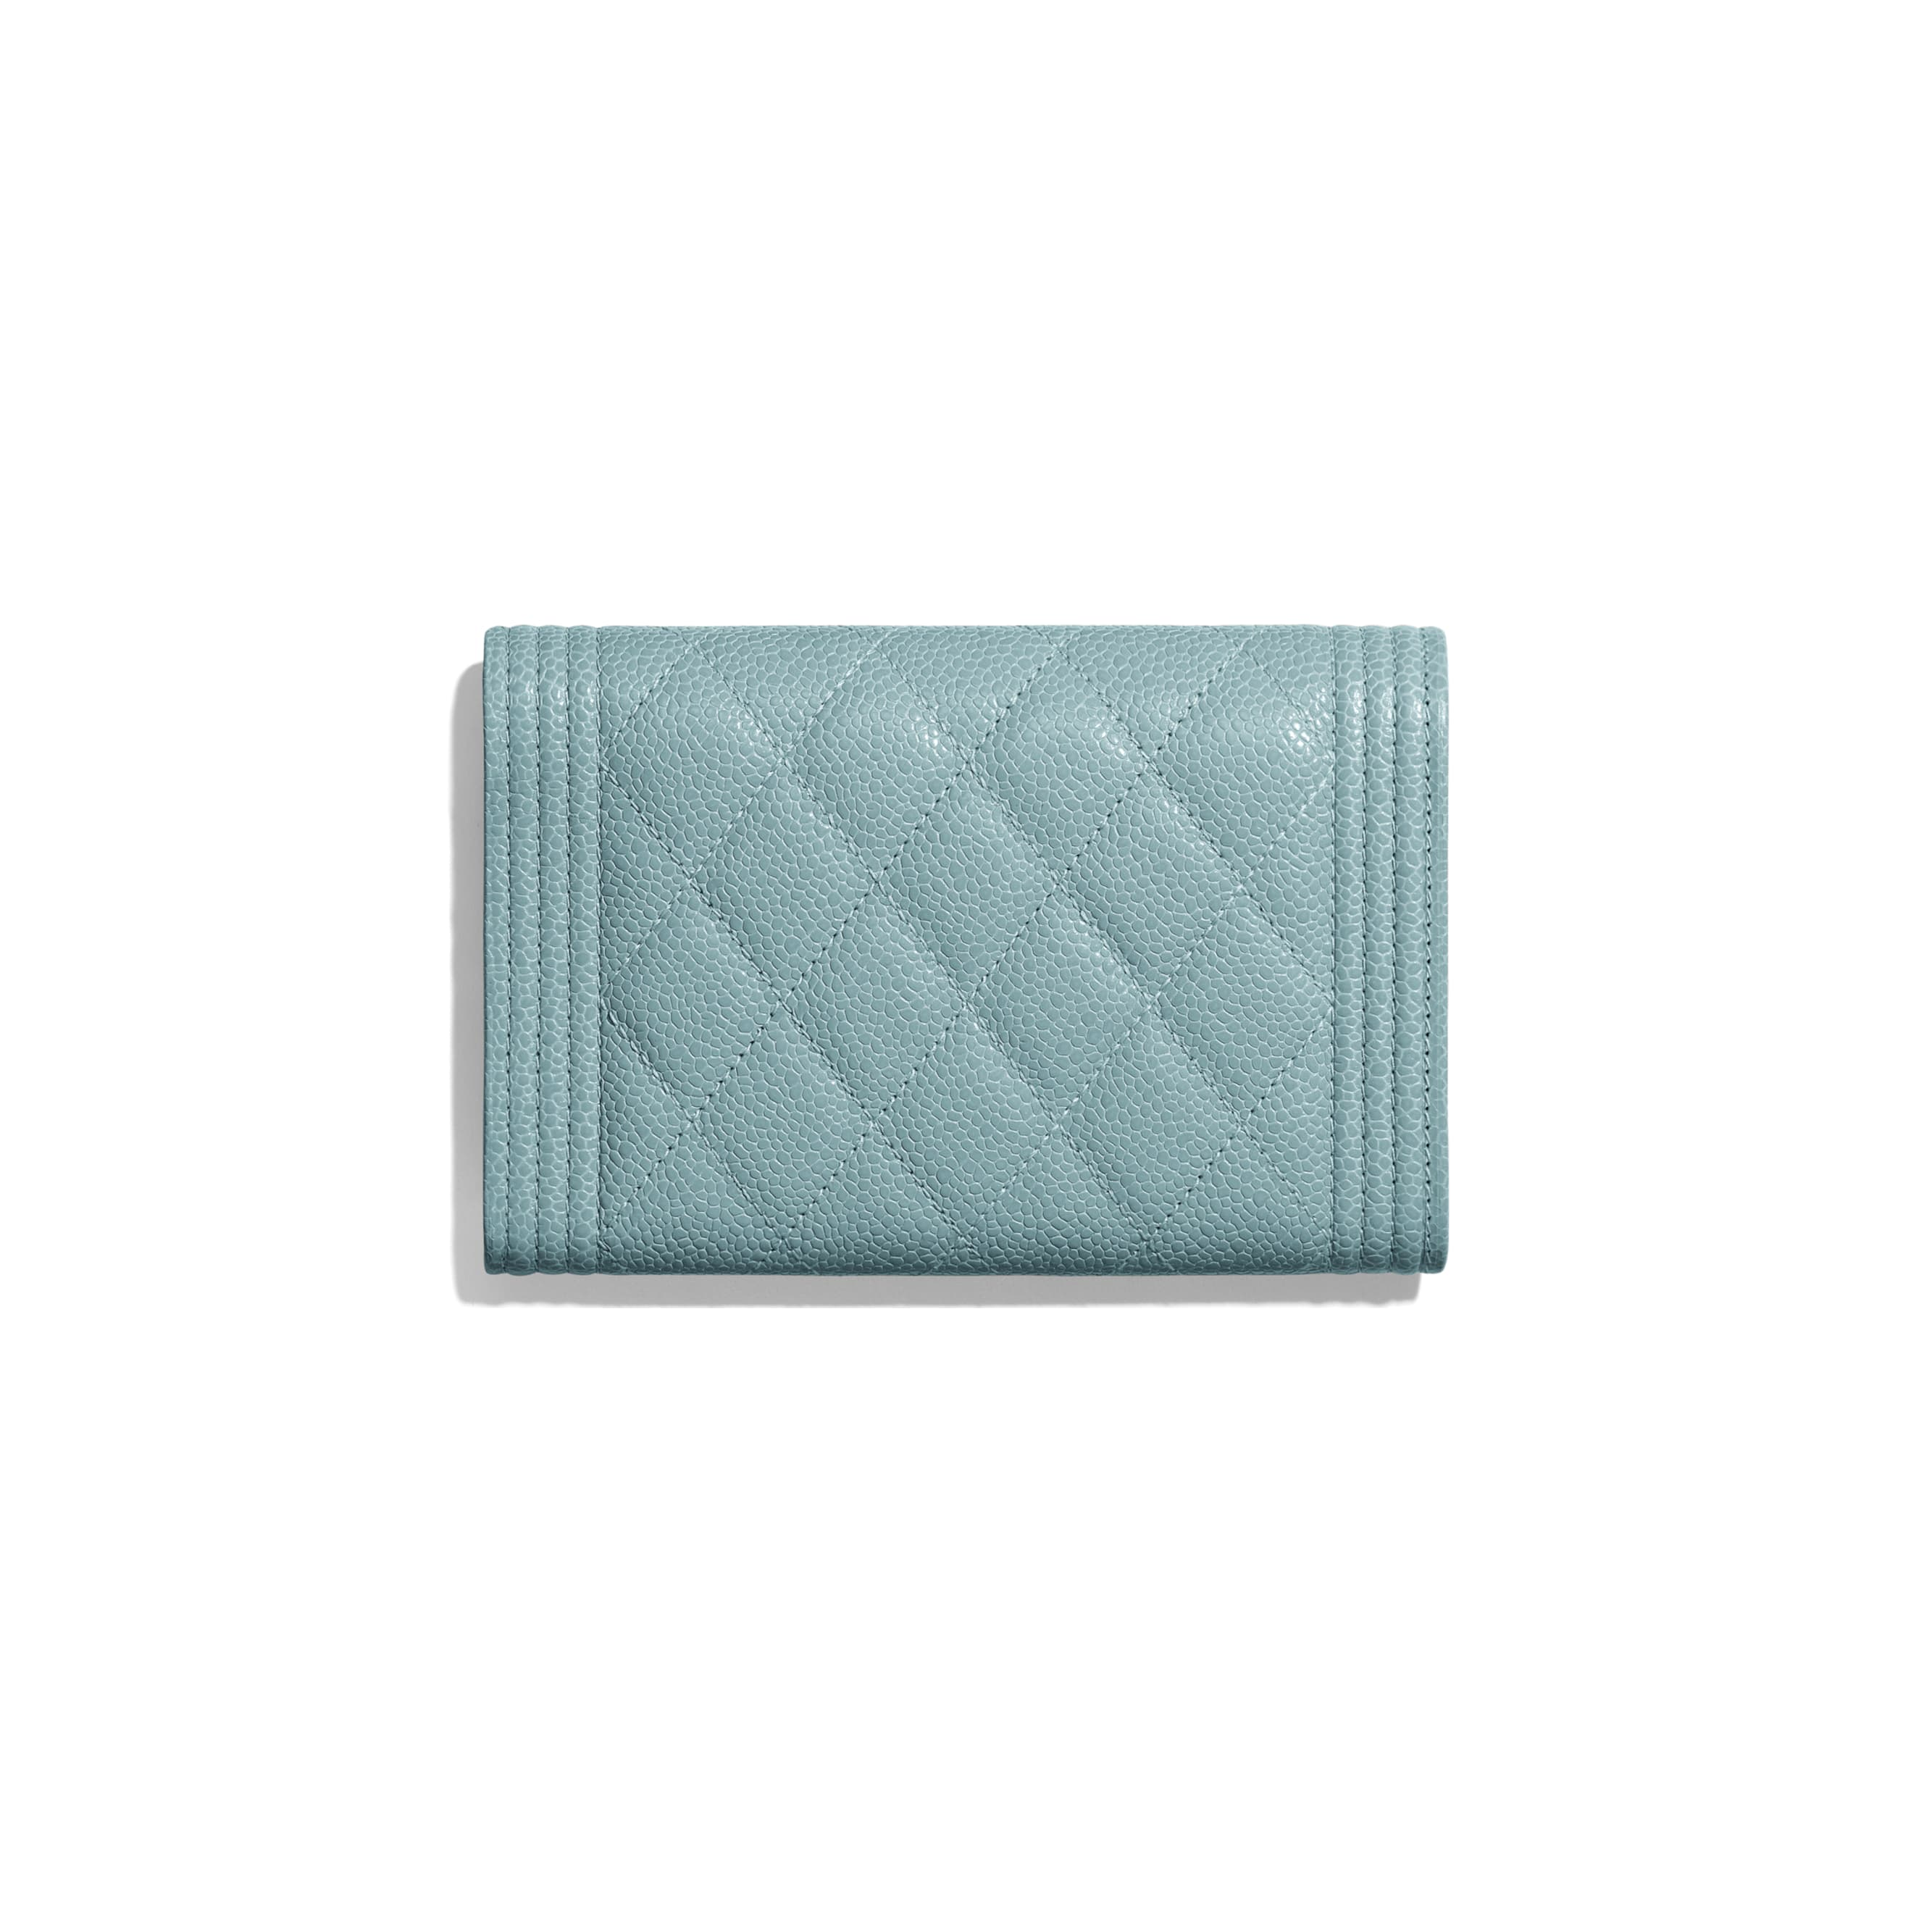 BOY CHANEL Flap Wallet - Blue - Grained Shiny Calfskin & Gold-Tone Metal - Alternative view - see standard sized version